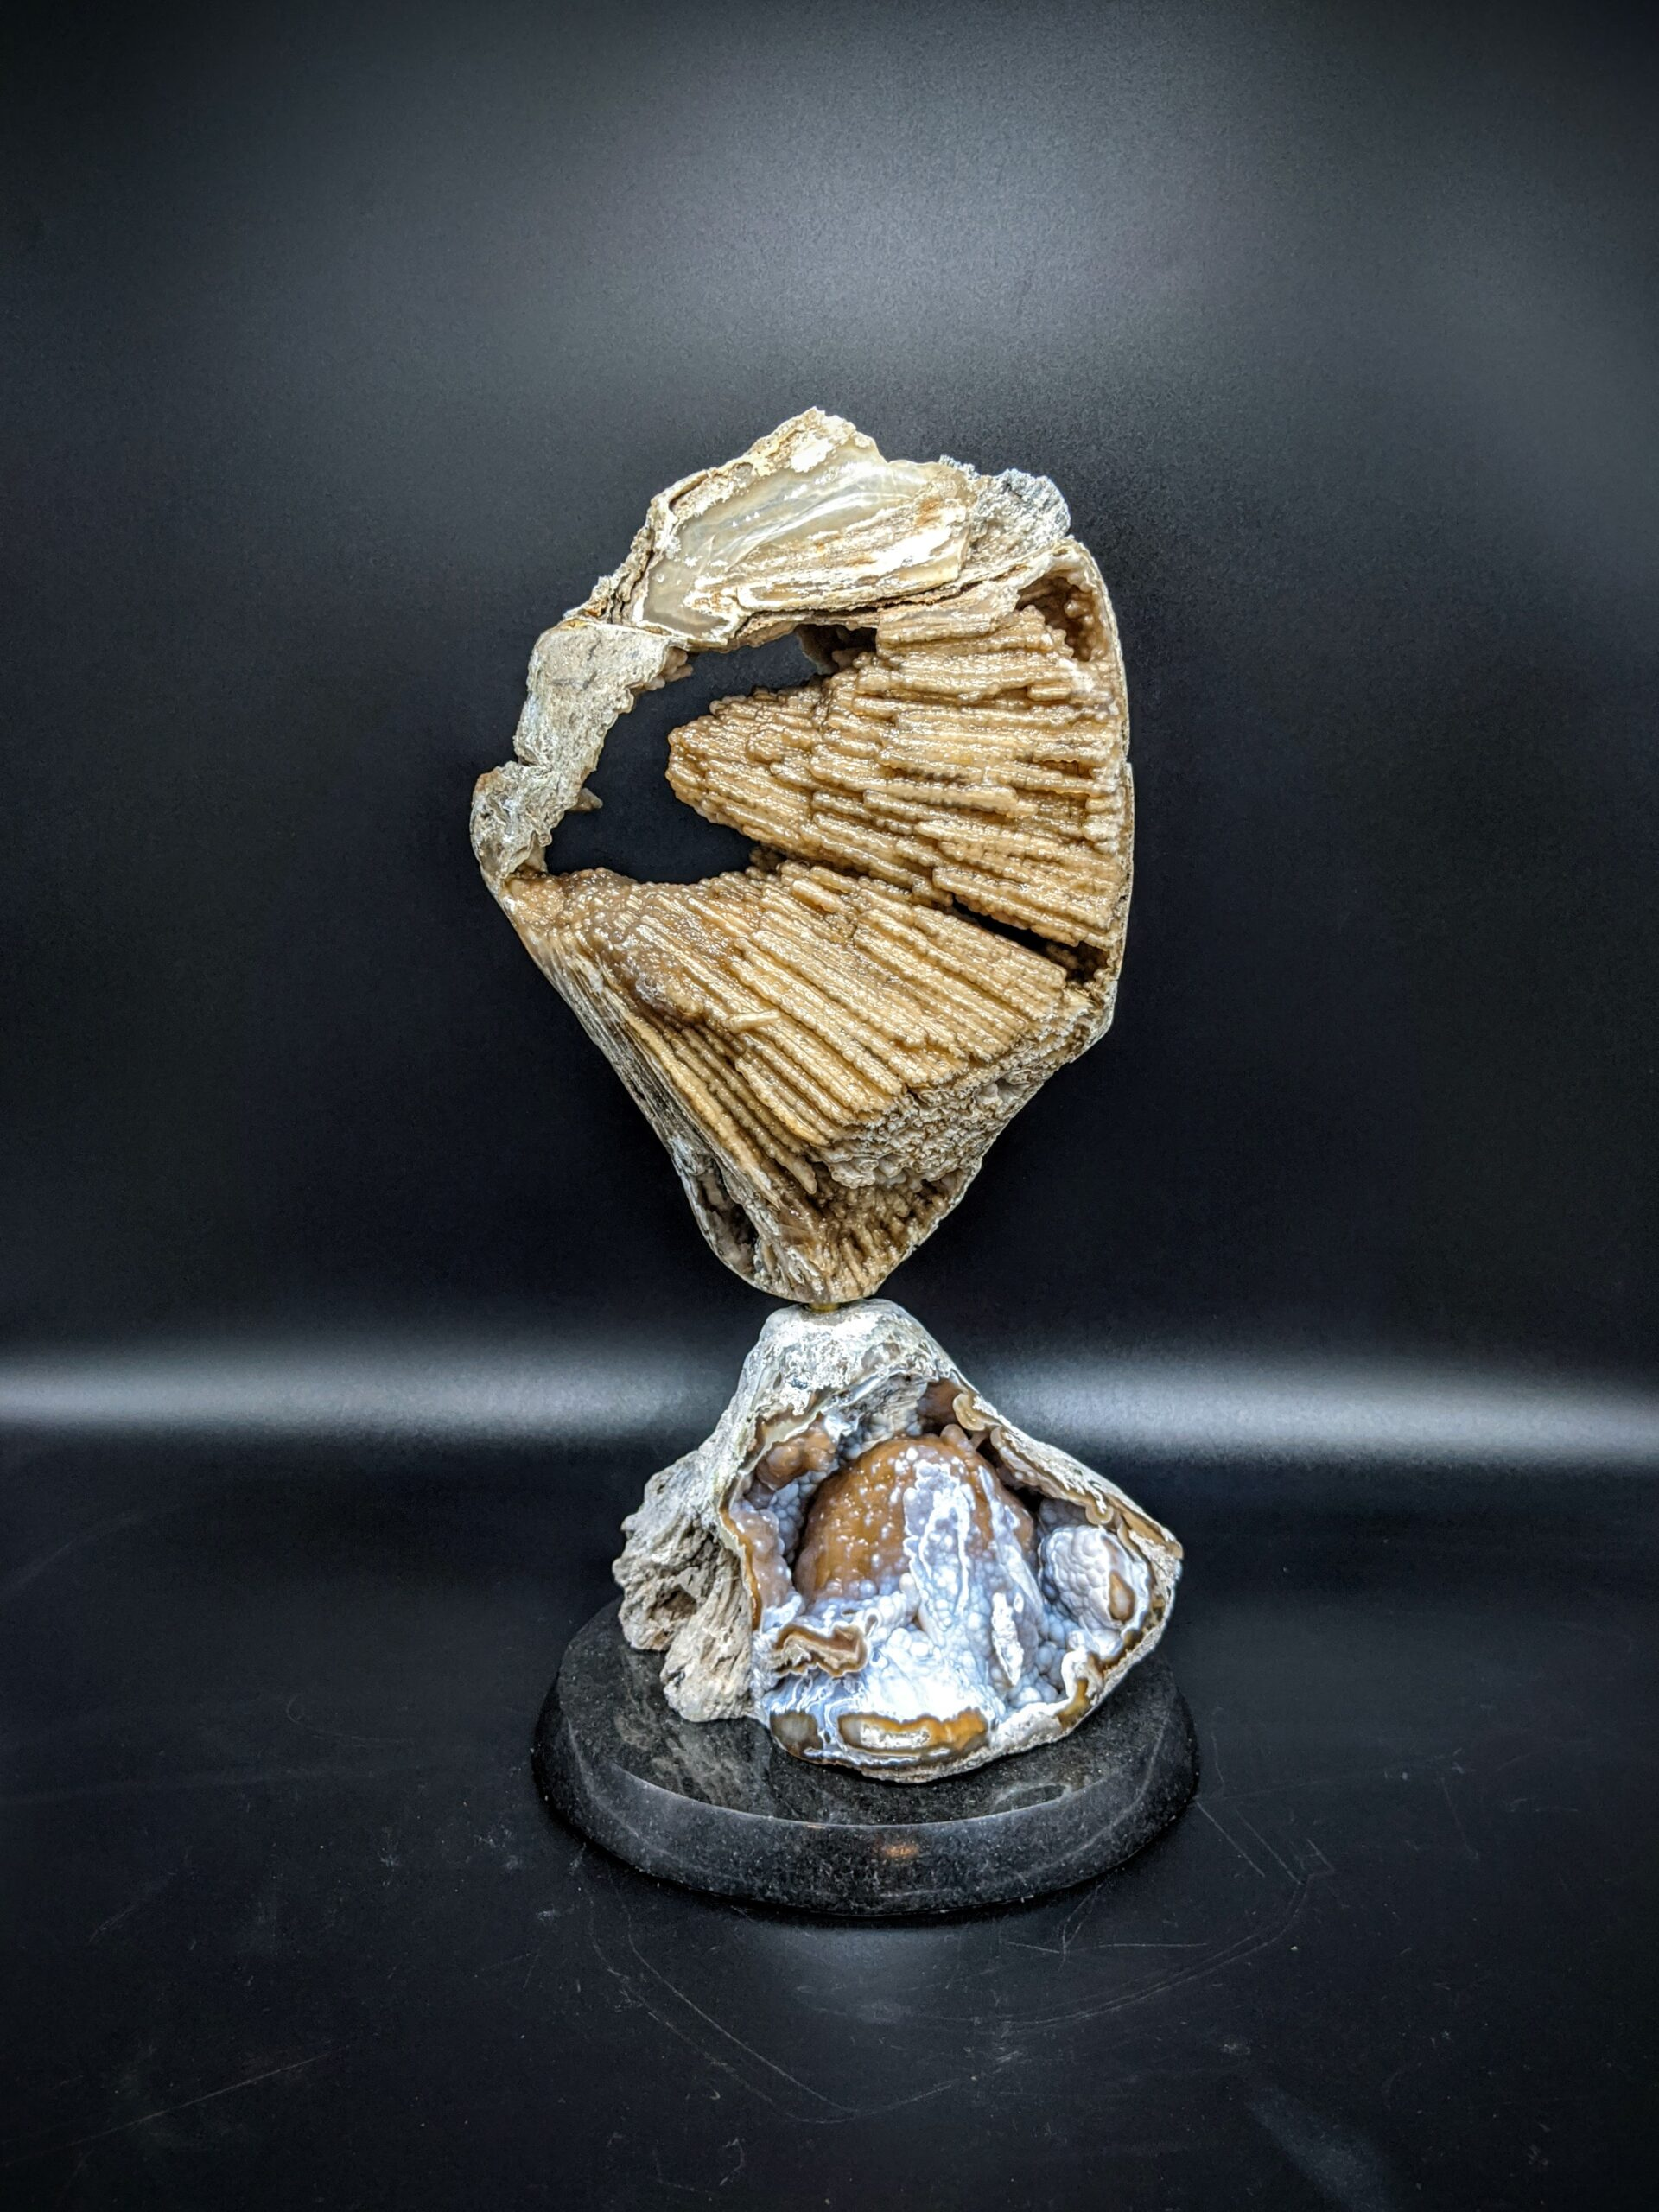 Agatized Coral sculpture